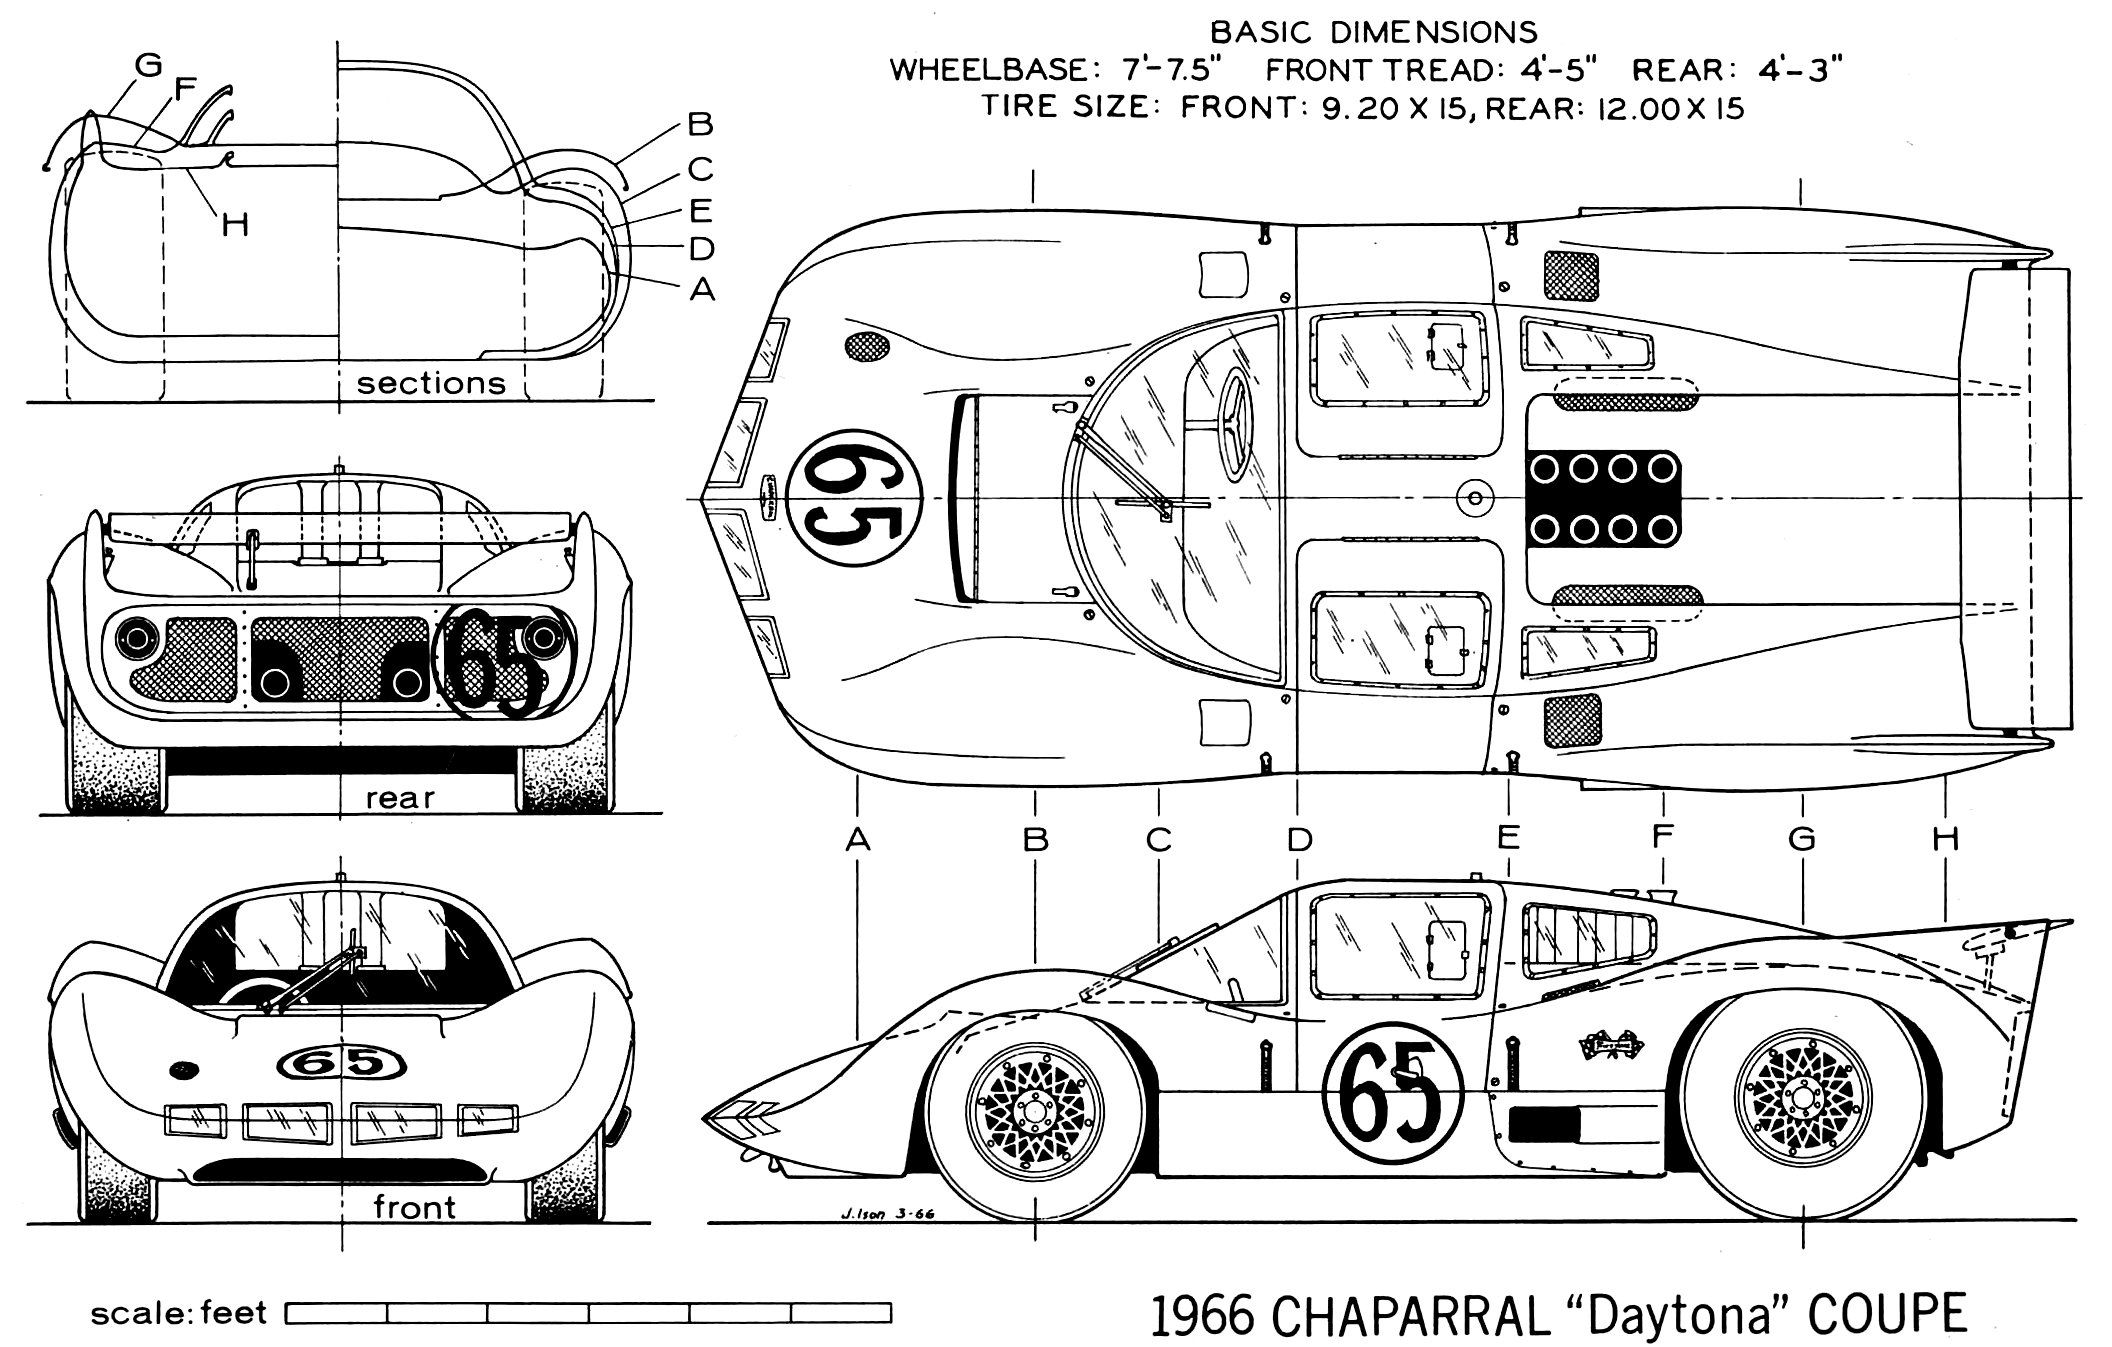 line drawing of the chaparral 2d as configured for daytona  1966